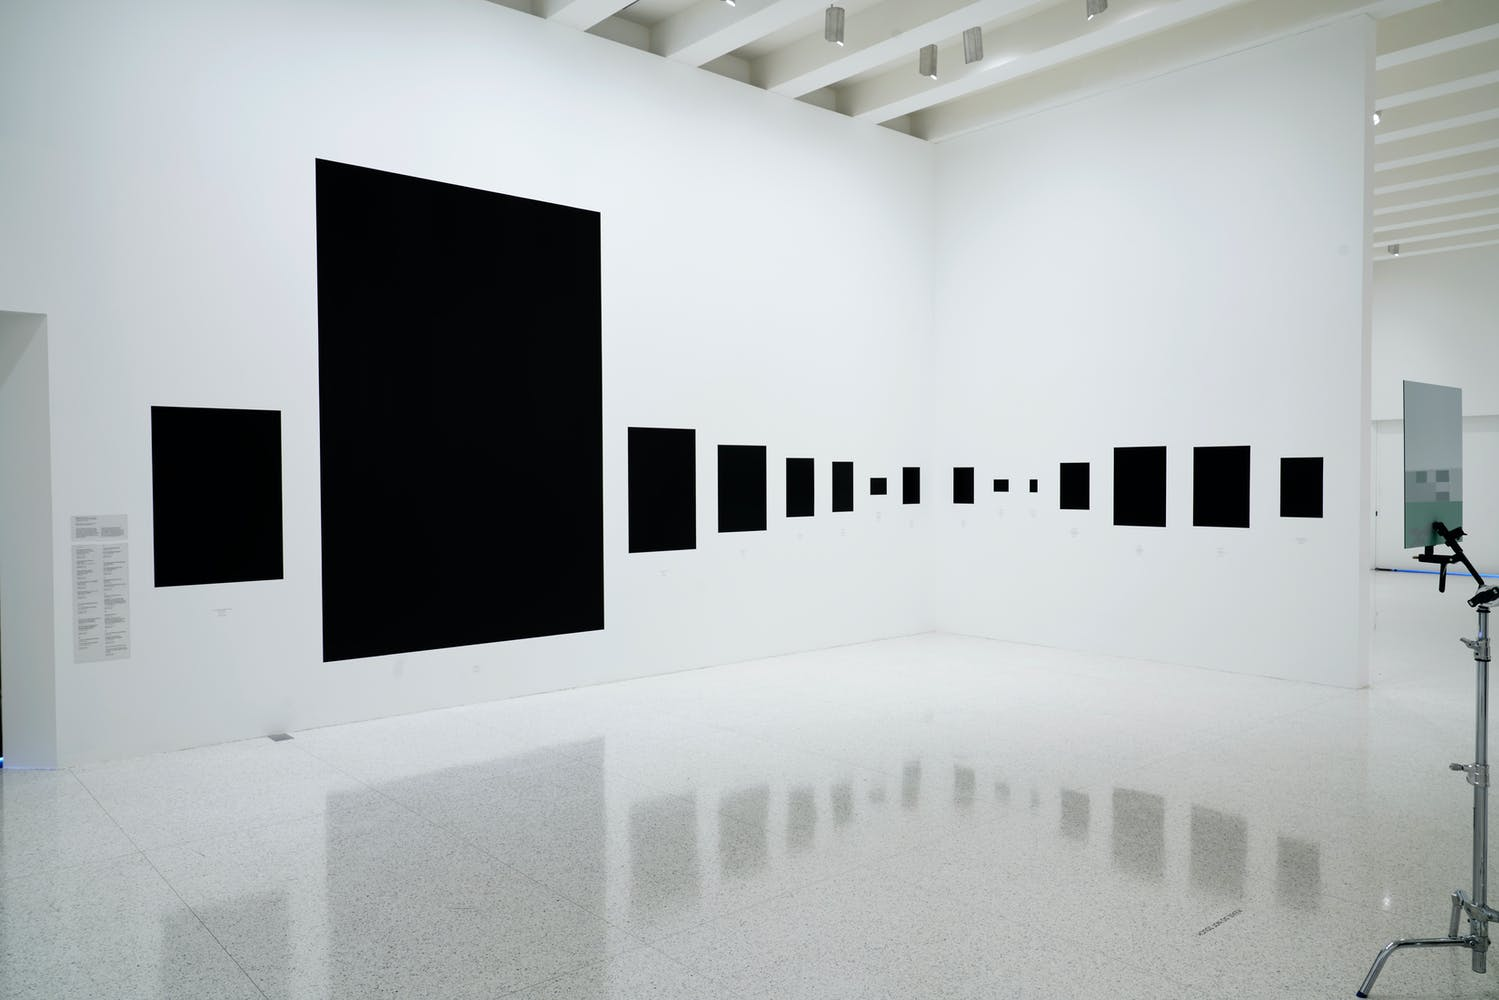 Image of gallery walls featuring large black squares of different sizes printed on them